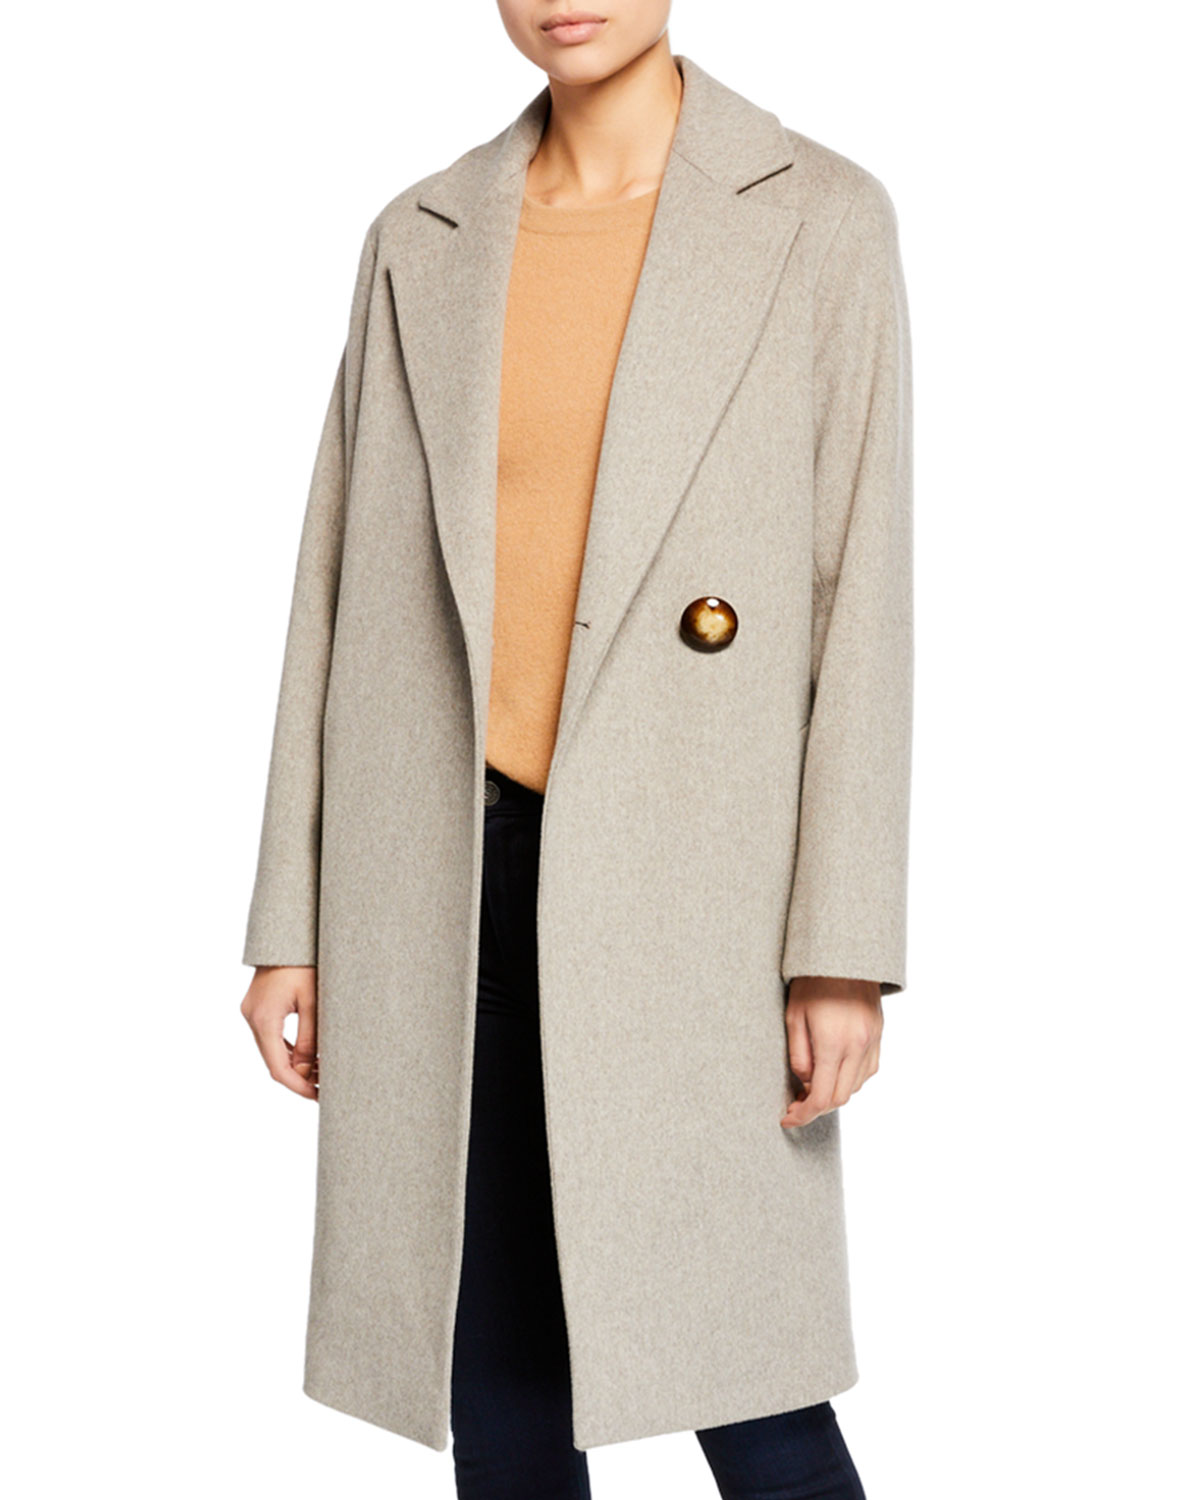 FLEURETTE Wool Asymmetric One-Button Midi Coat in Neutral Pattern